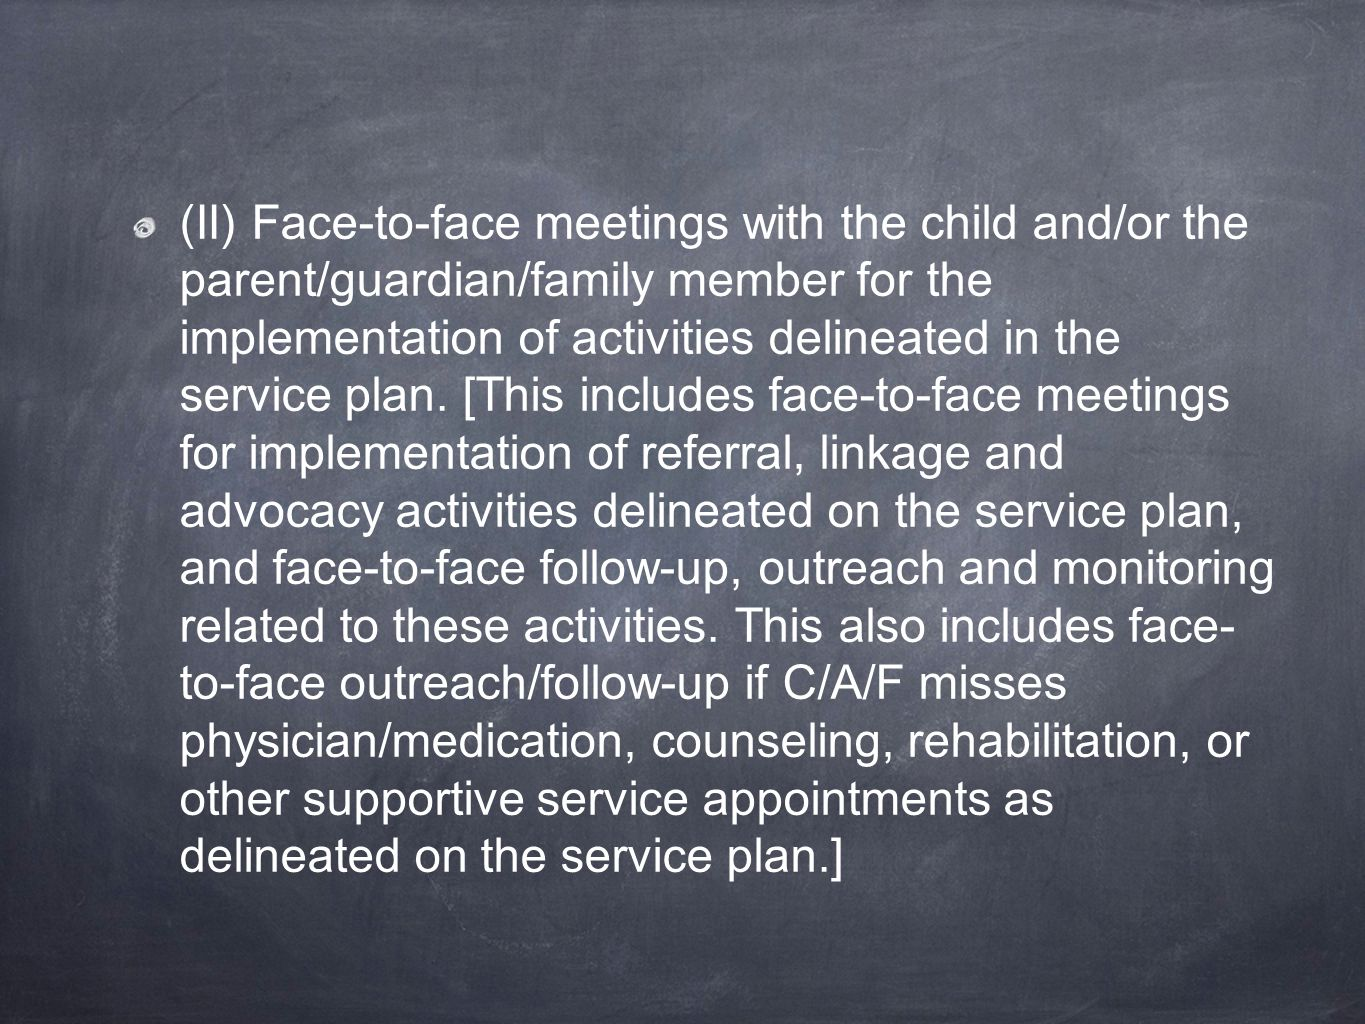 (II) Face-to-face meetings with the child and/or the parent/guardian/family member for the implementation of activities delineated in the service plan